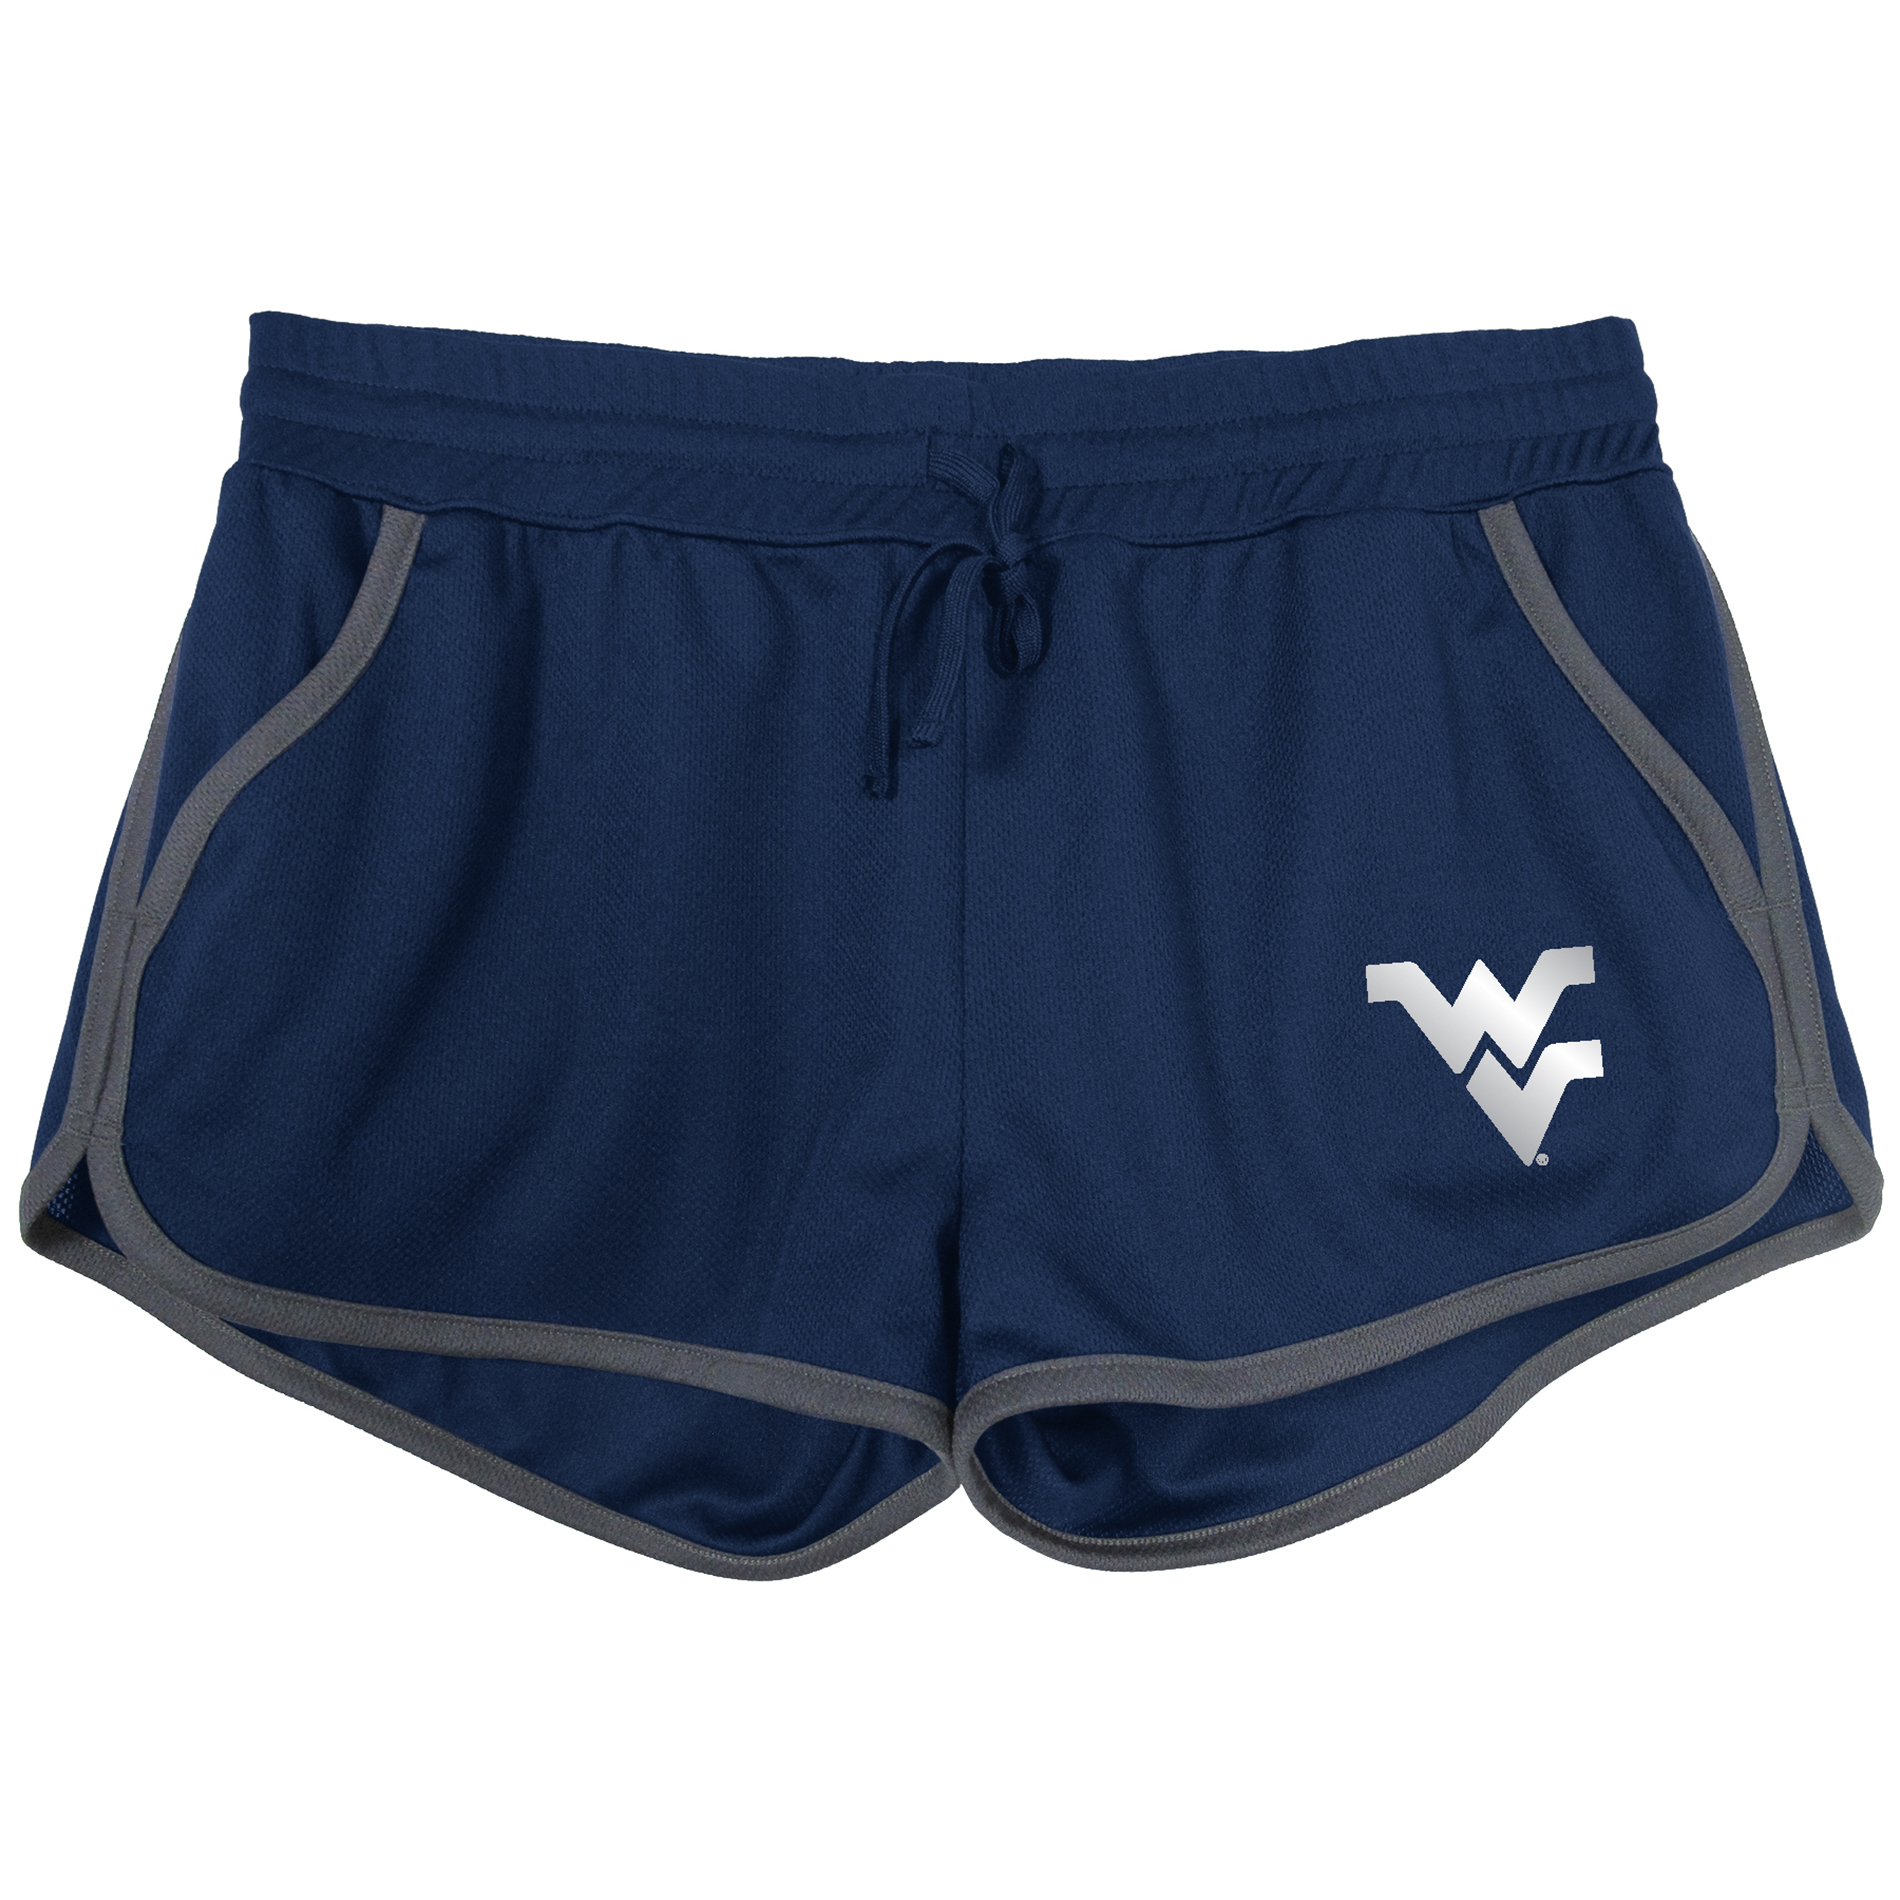 NCAA Women's West Virginia University Mountaineers Mesh Shorts PartNumber: 046VA88280312P MfgPartNumber: 7AJQJ3MKMF